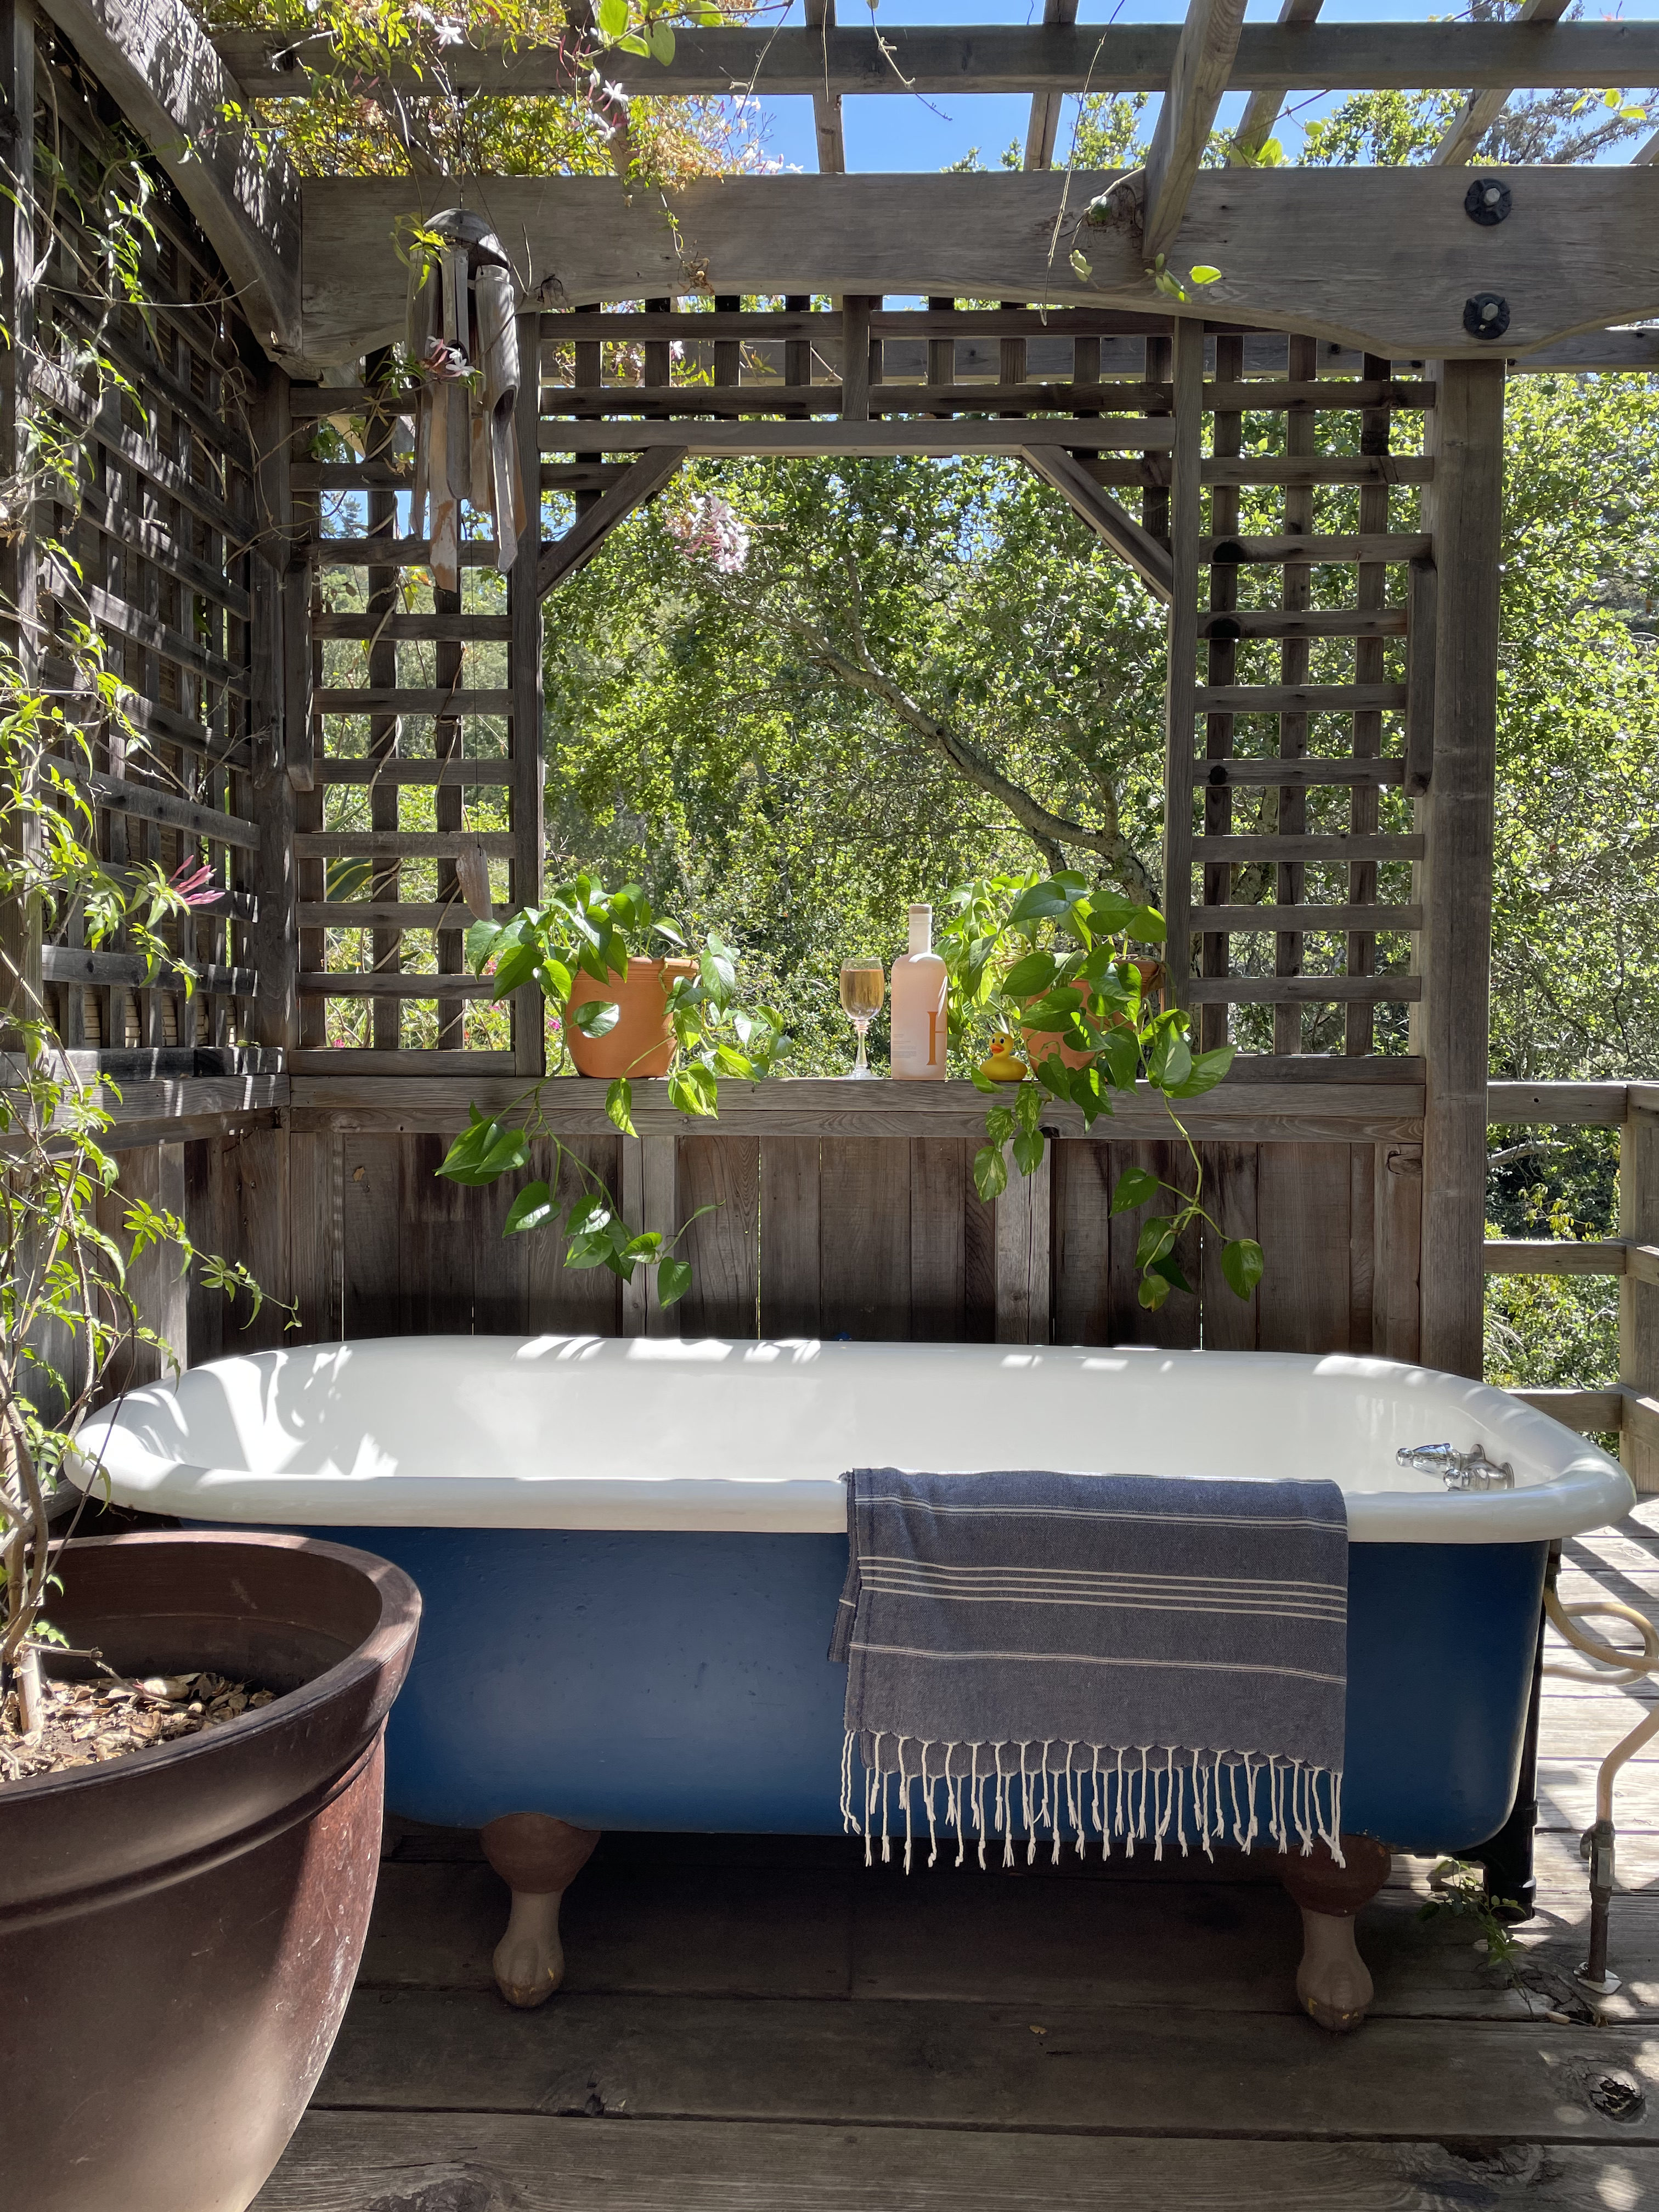 A Soak in an Outdoor Bathtub Is the Multi-Sensory Experience You Need